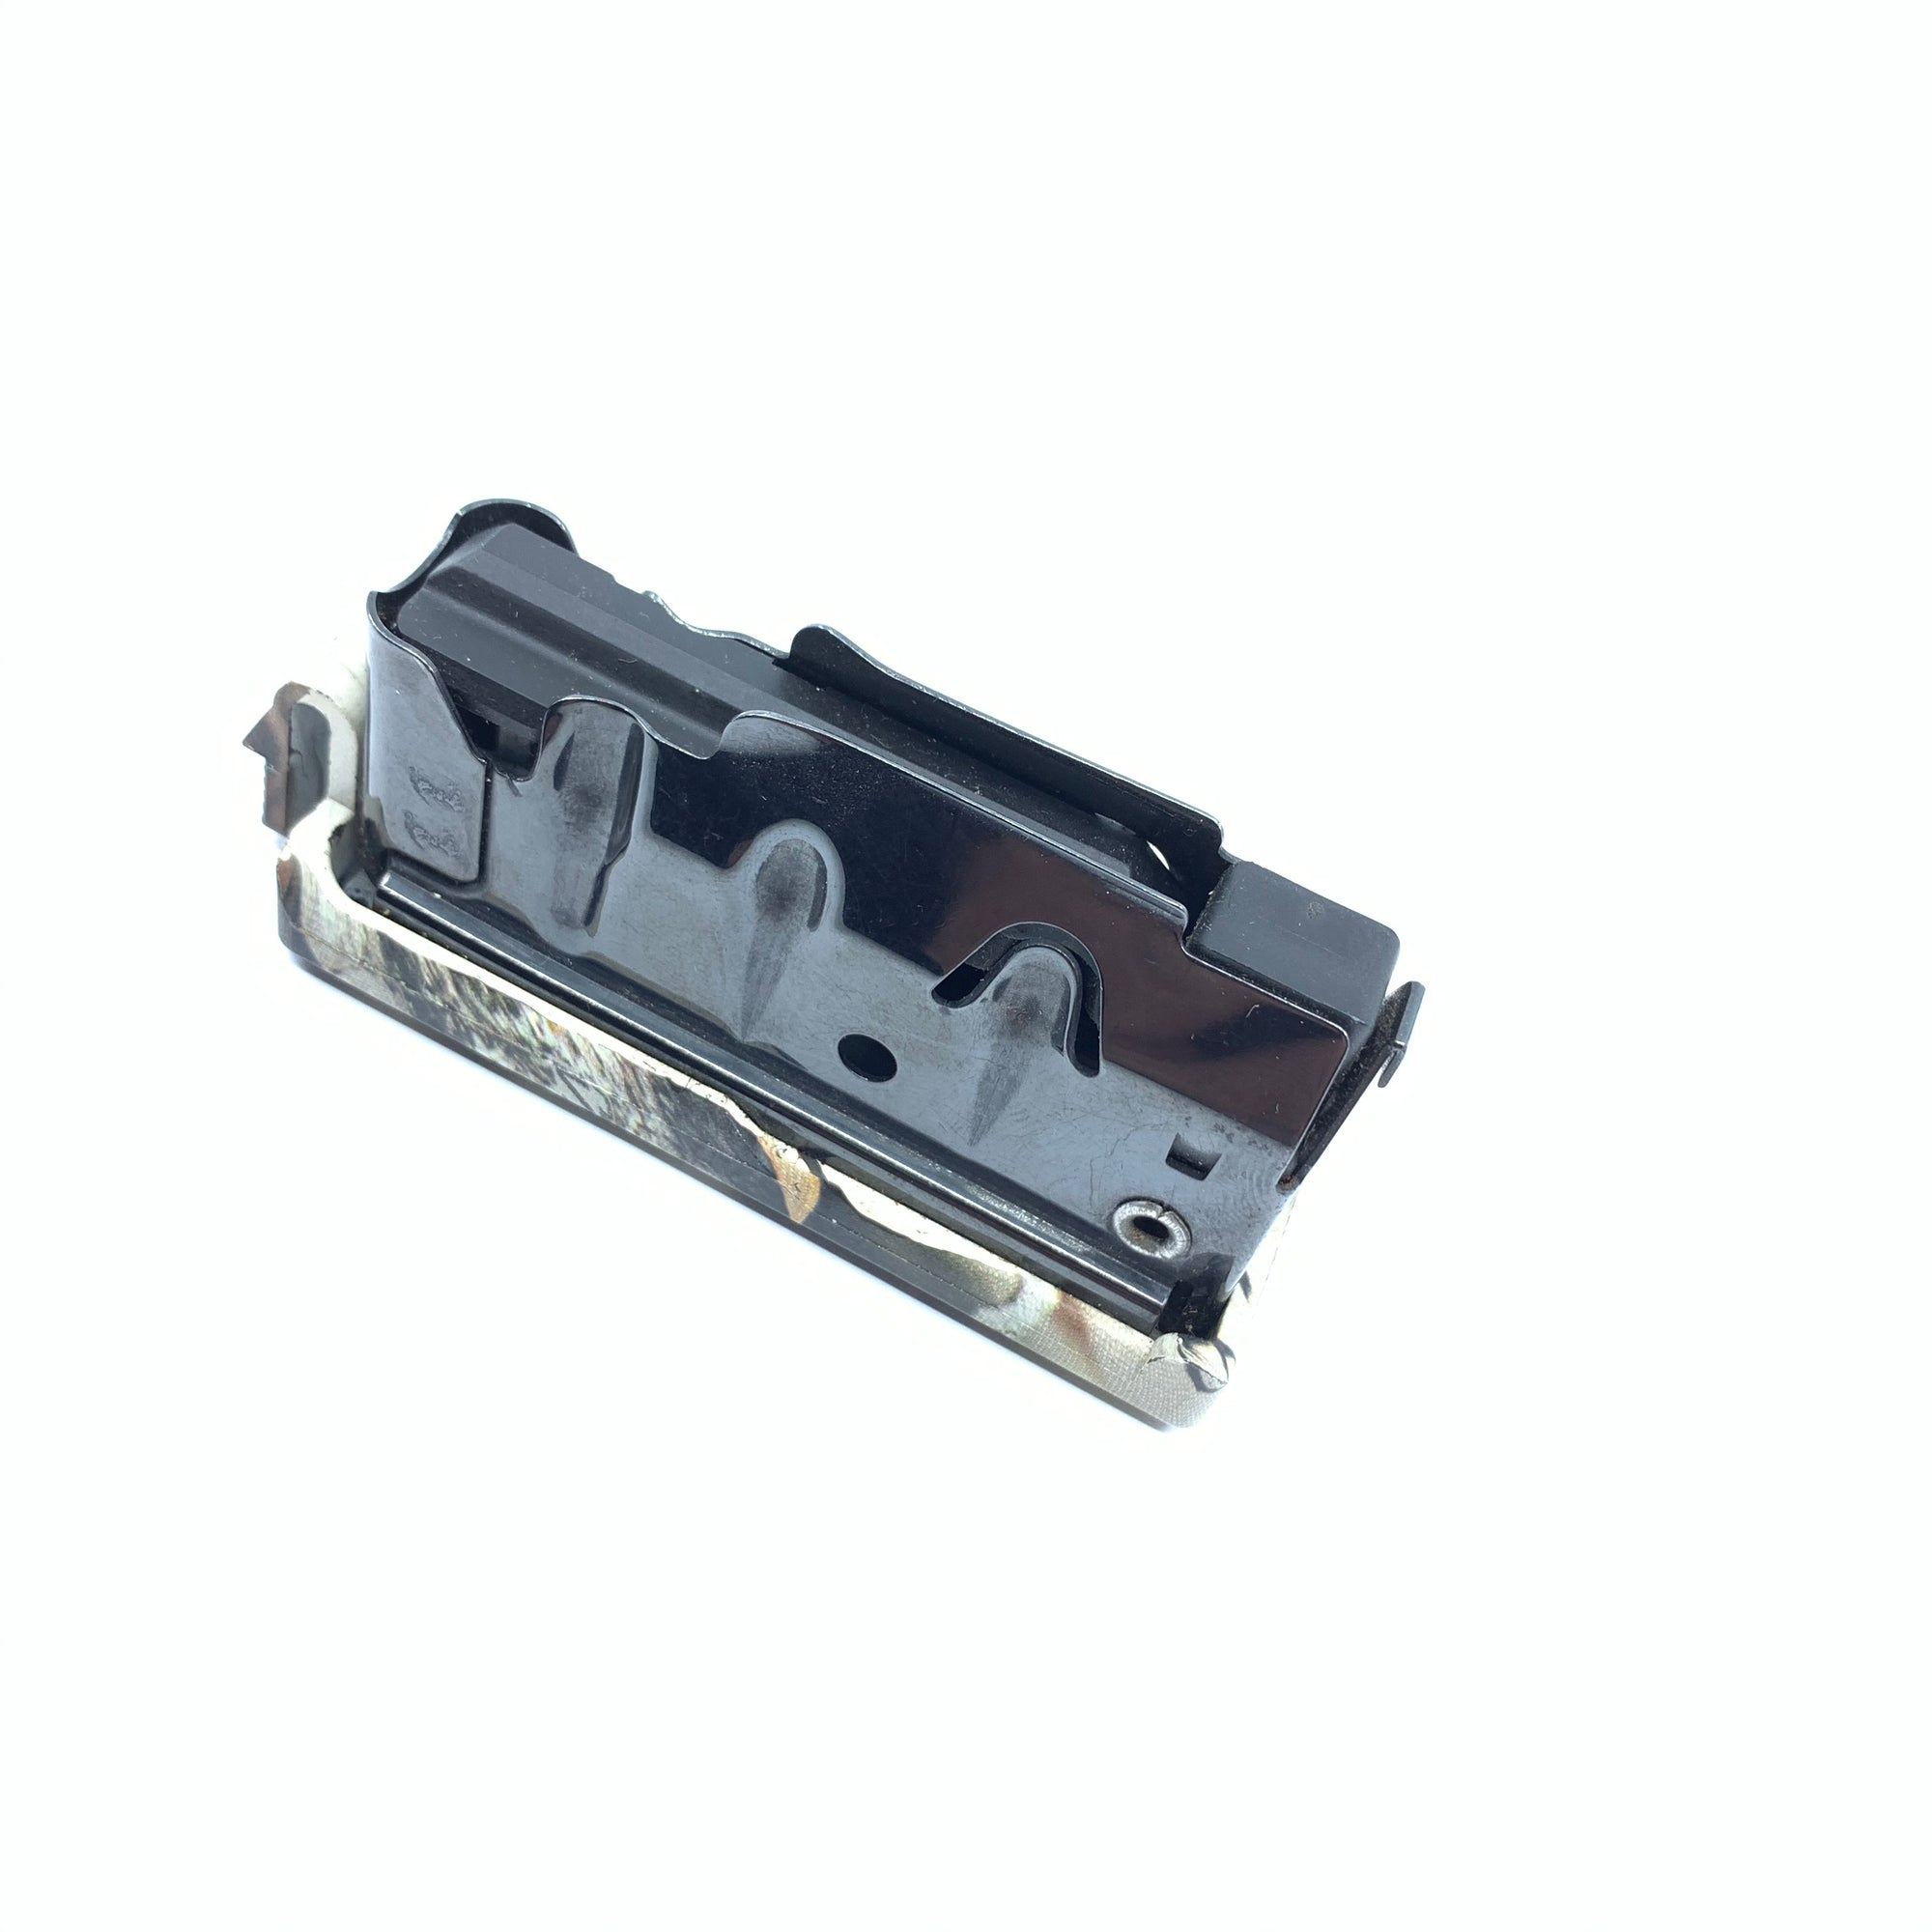 Savage Axis 223 Rem Magazine with Camo Base